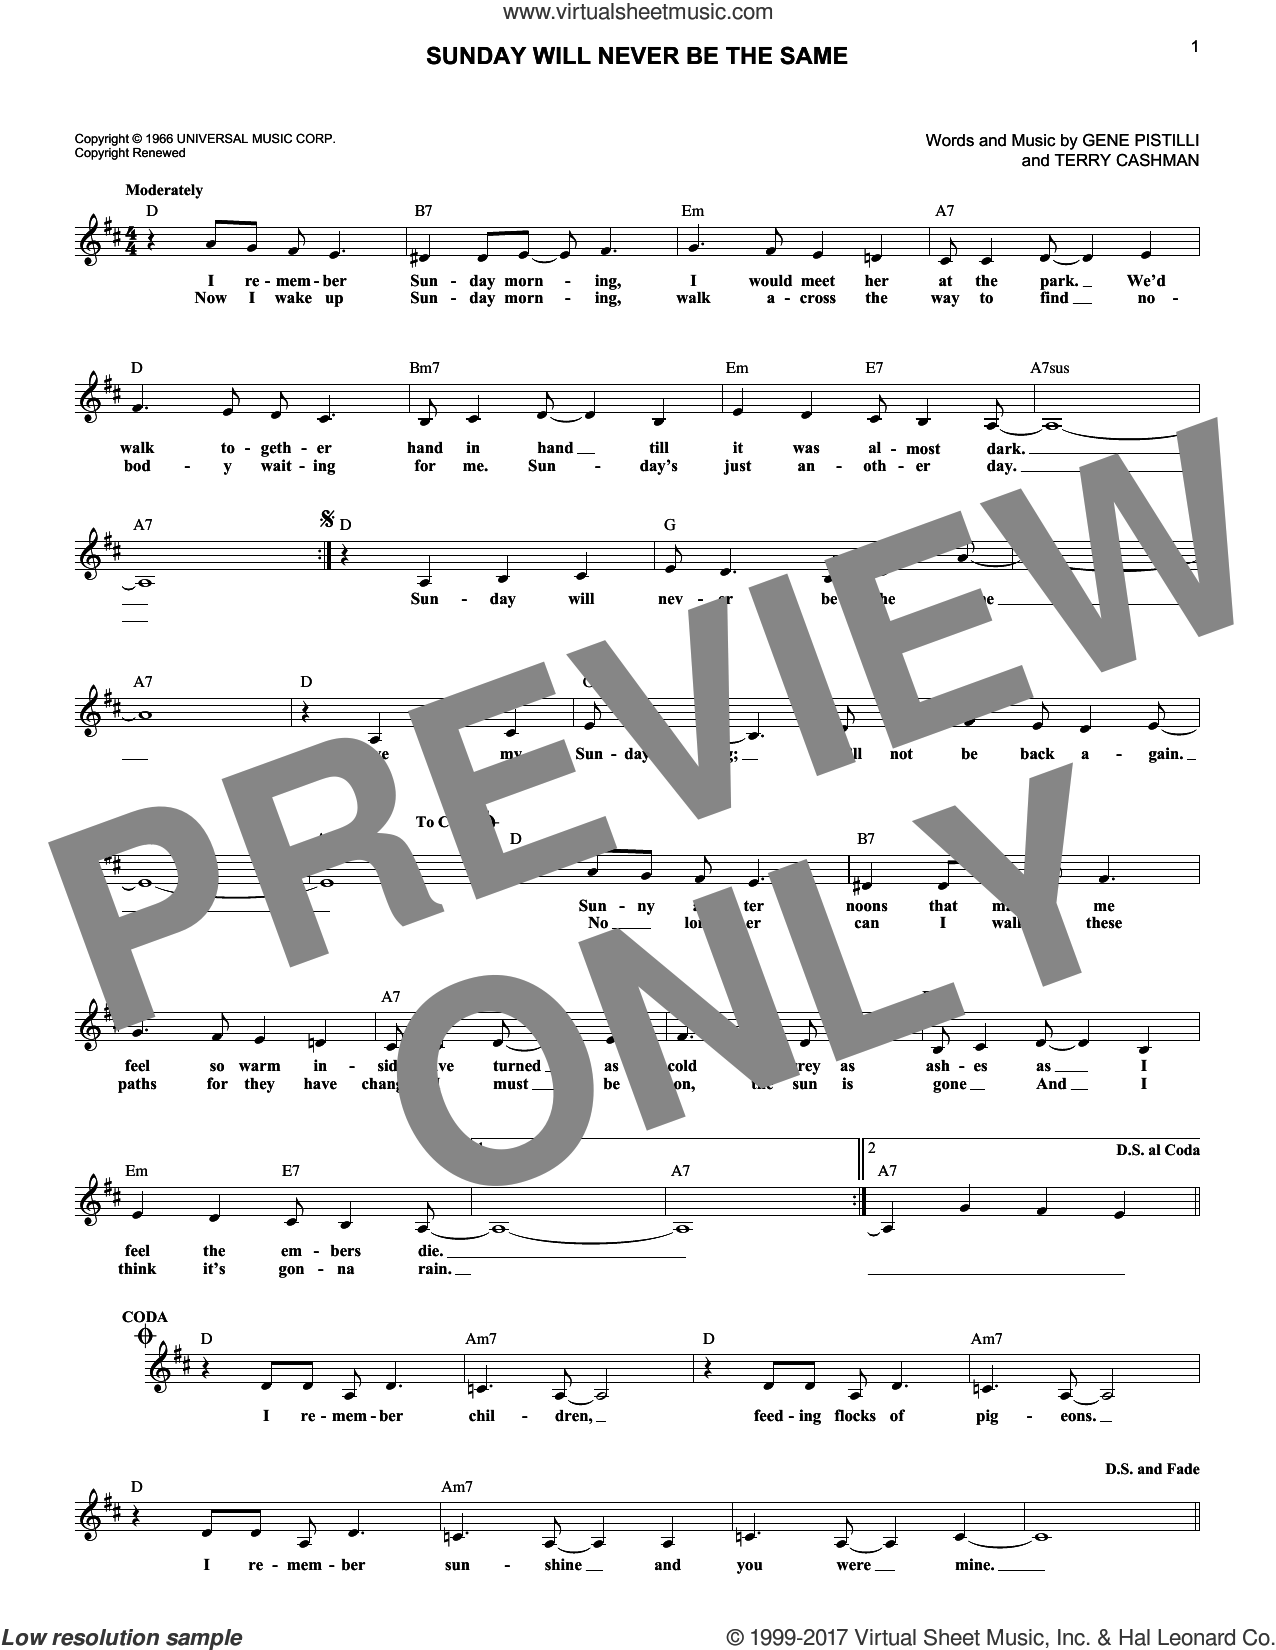 Sunday Will Never Be The Same sheet music for voice and other instruments (fake book) by Spanky & Our Gang, Gene Pistilli and Terry Cashman, intermediate skill level